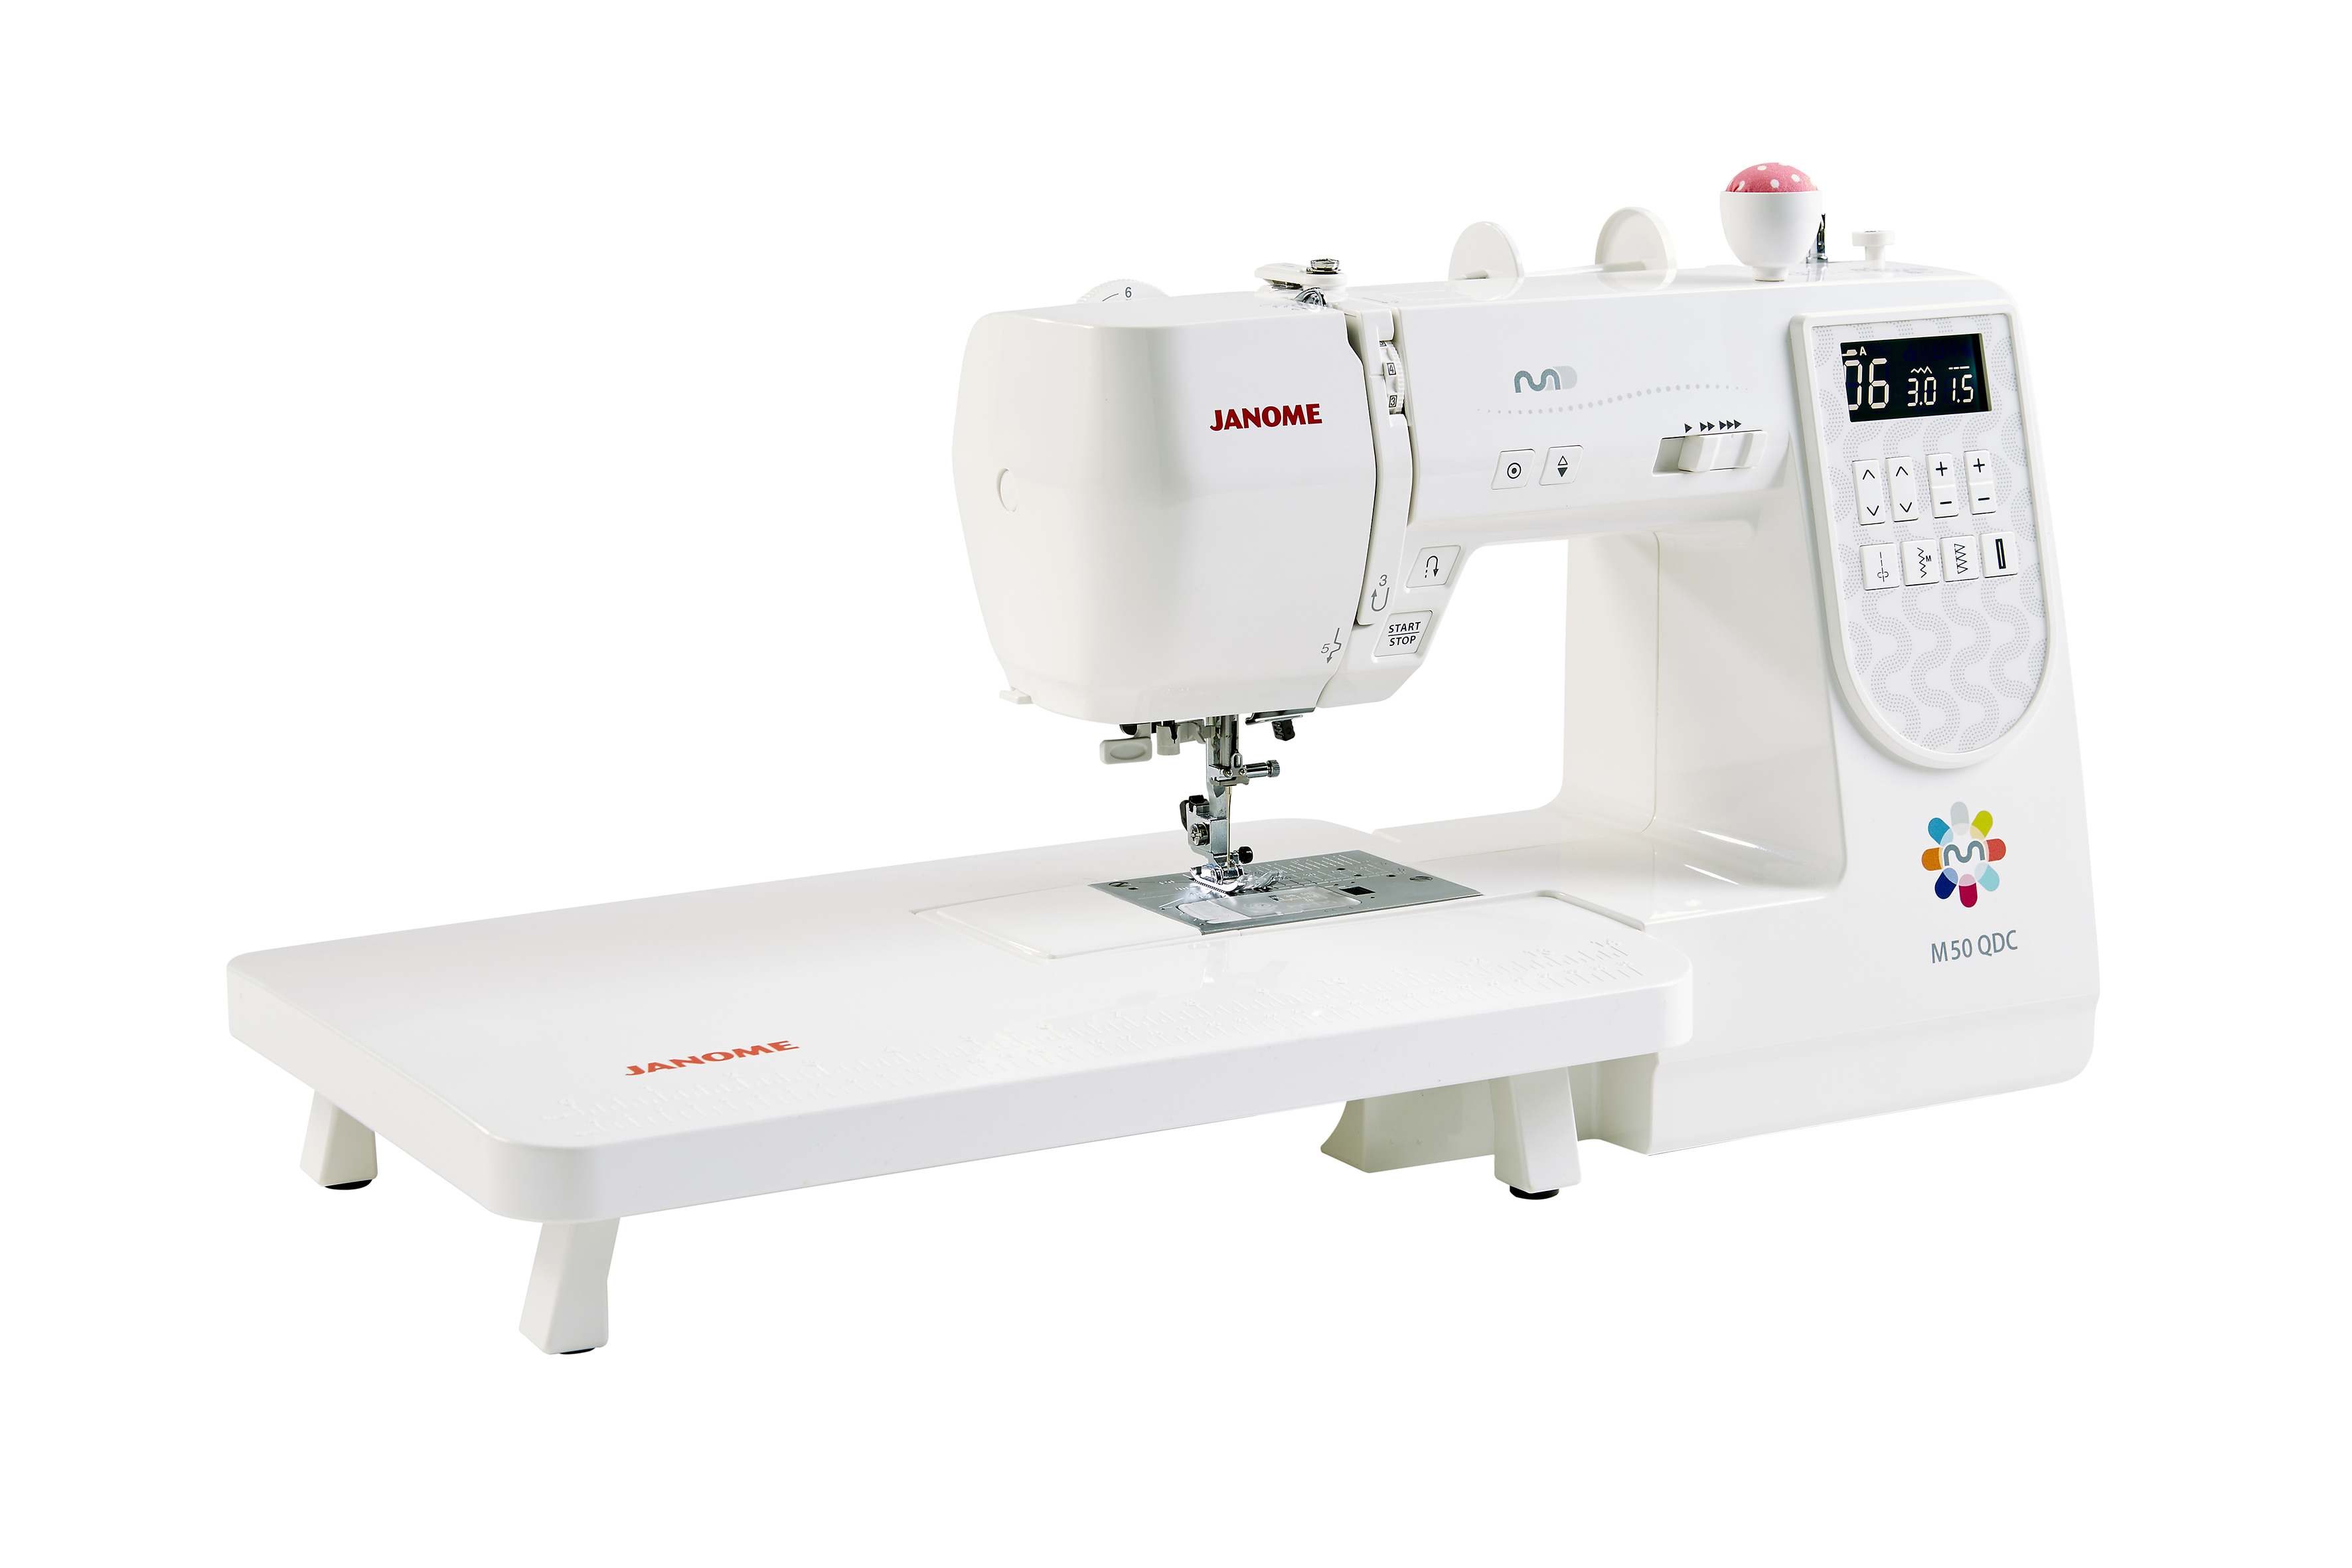 Janome M50-QDC 2 - Franklins Group